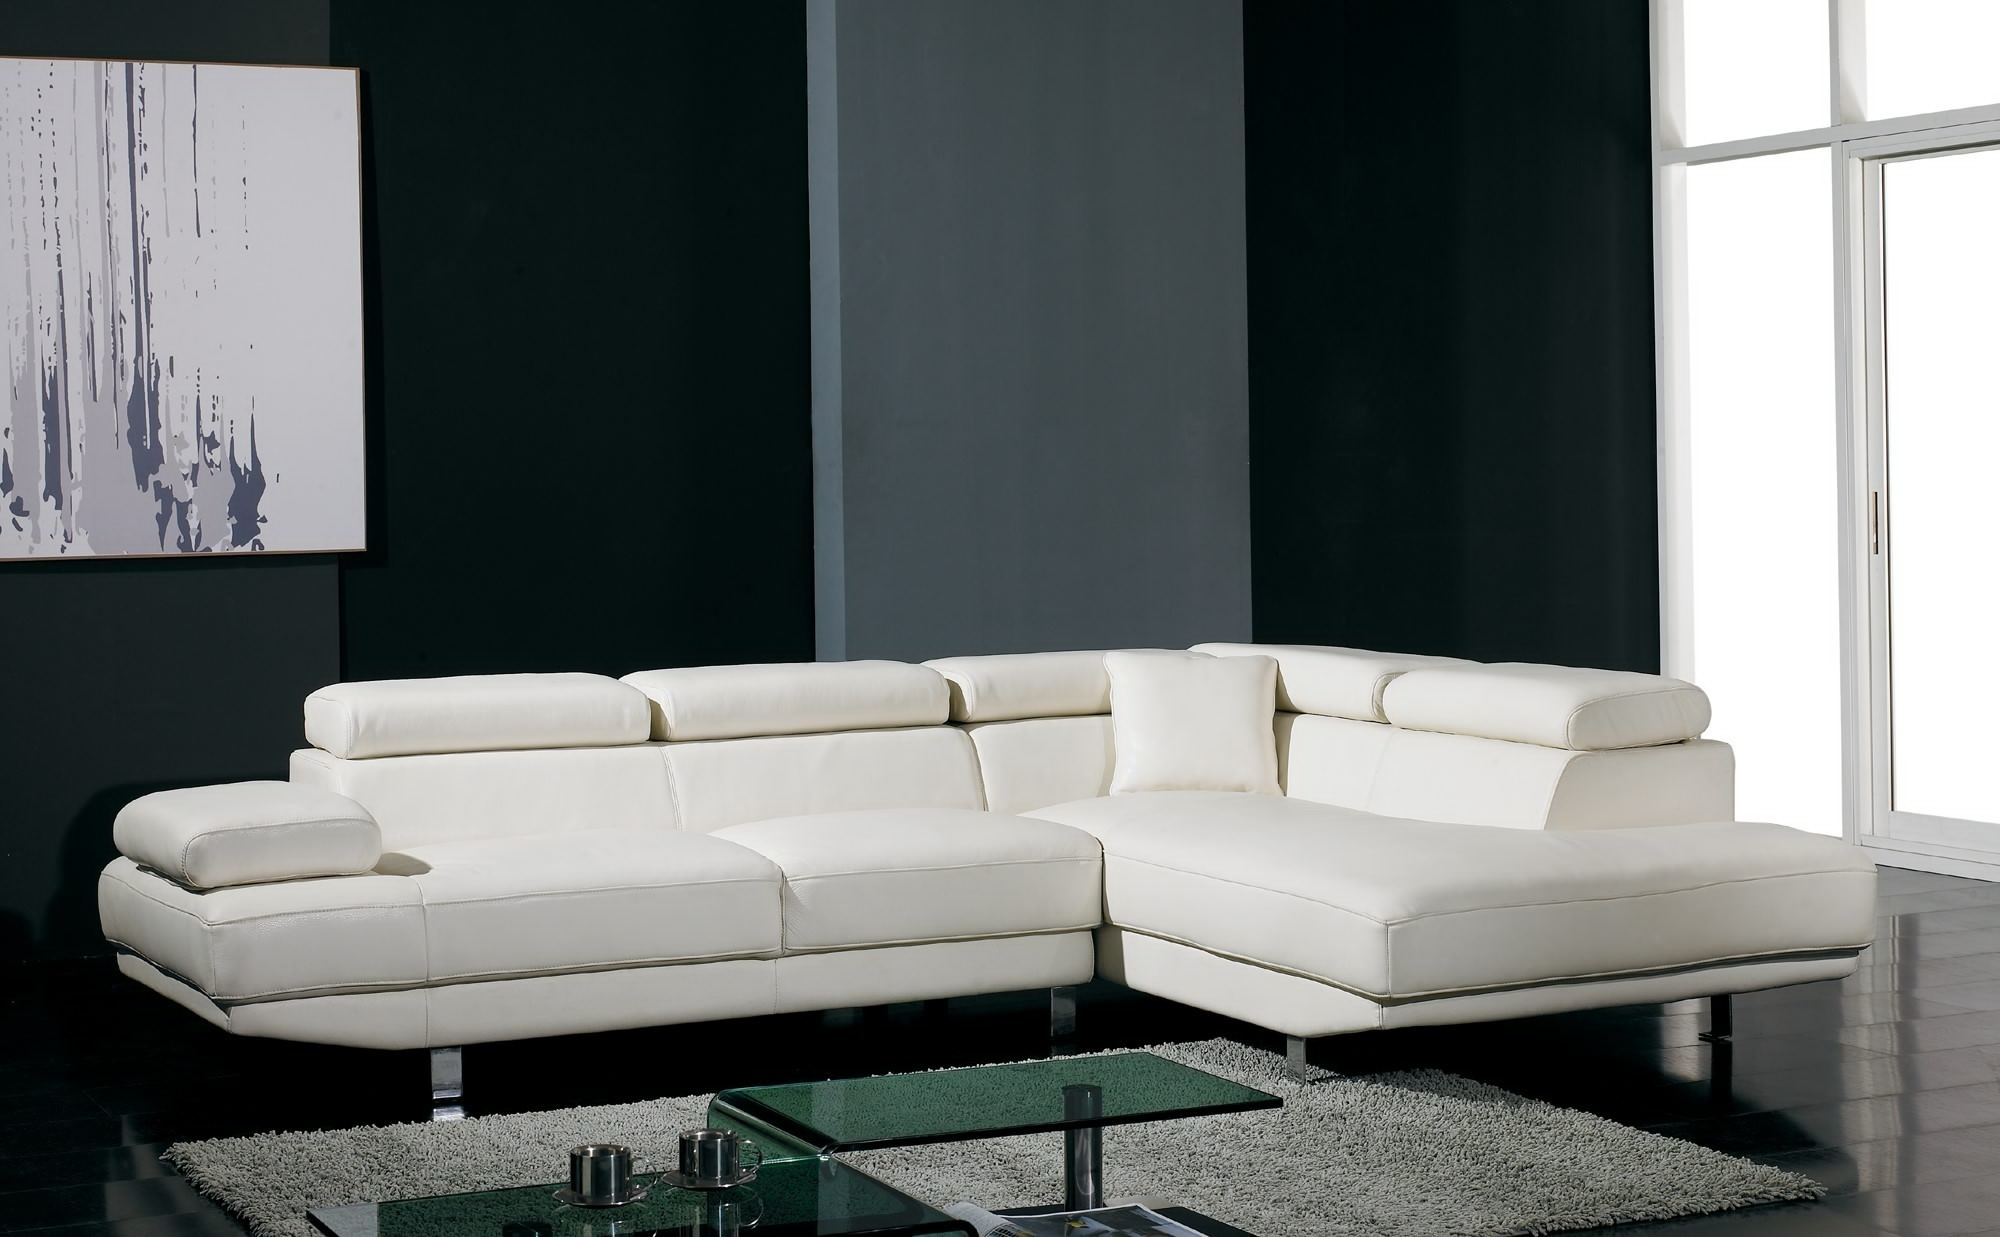 Sectional Sofa Design: Contemporary Sectional Sofa Bed Set Recliners Intended For Contemporary Sectional Sofas (View 6 of 10)